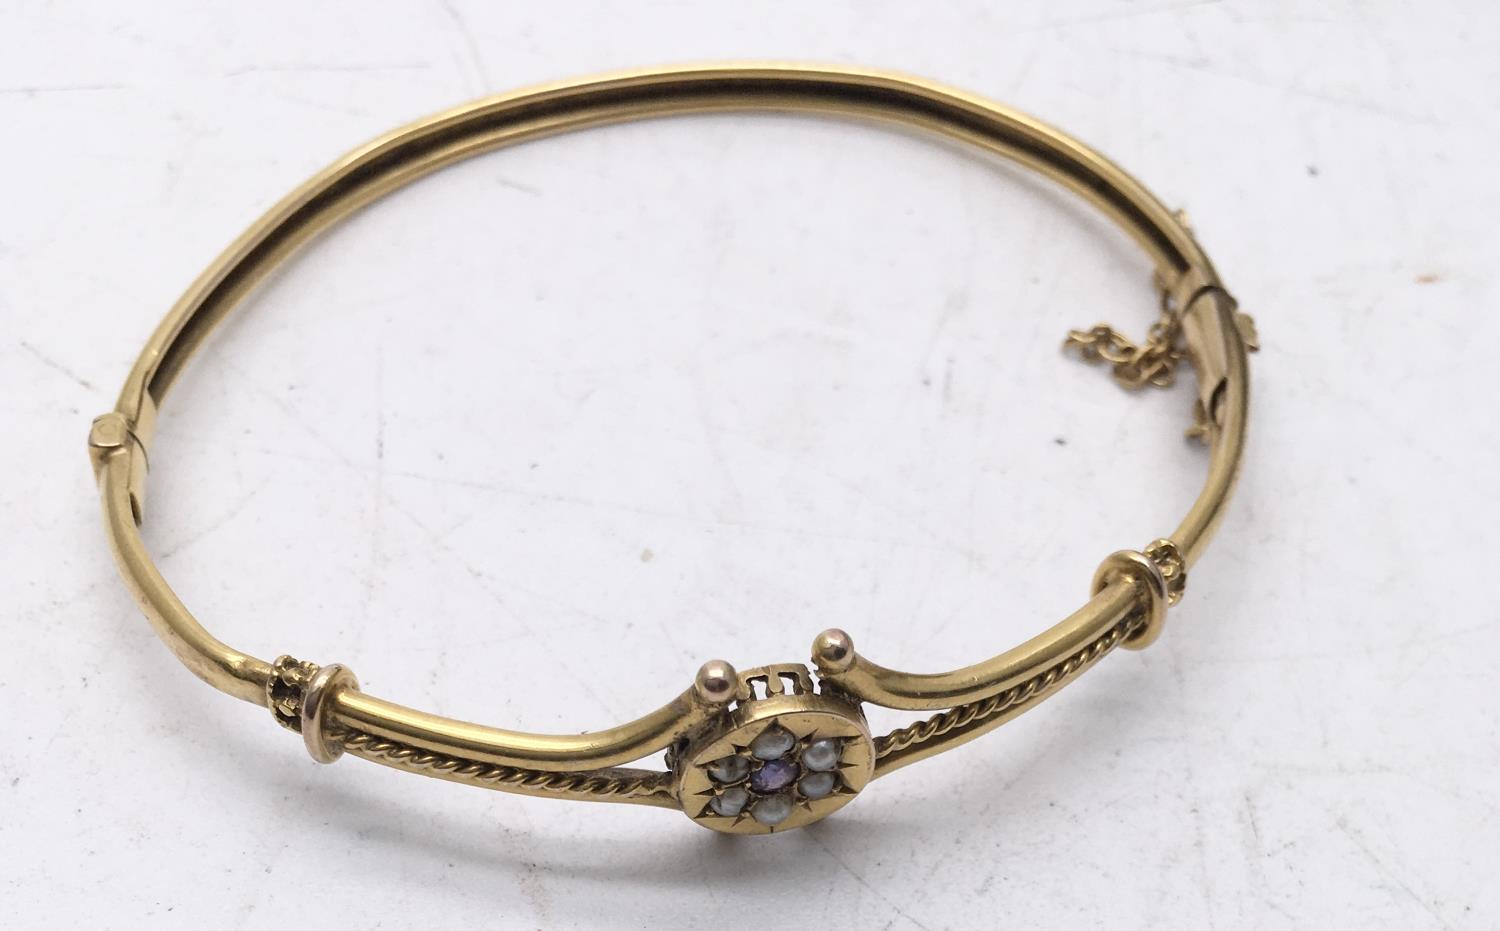 Delicate Victorian period Ladies bangle with gold coloured body set with seed pearl and amethyst - Image 4 of 4